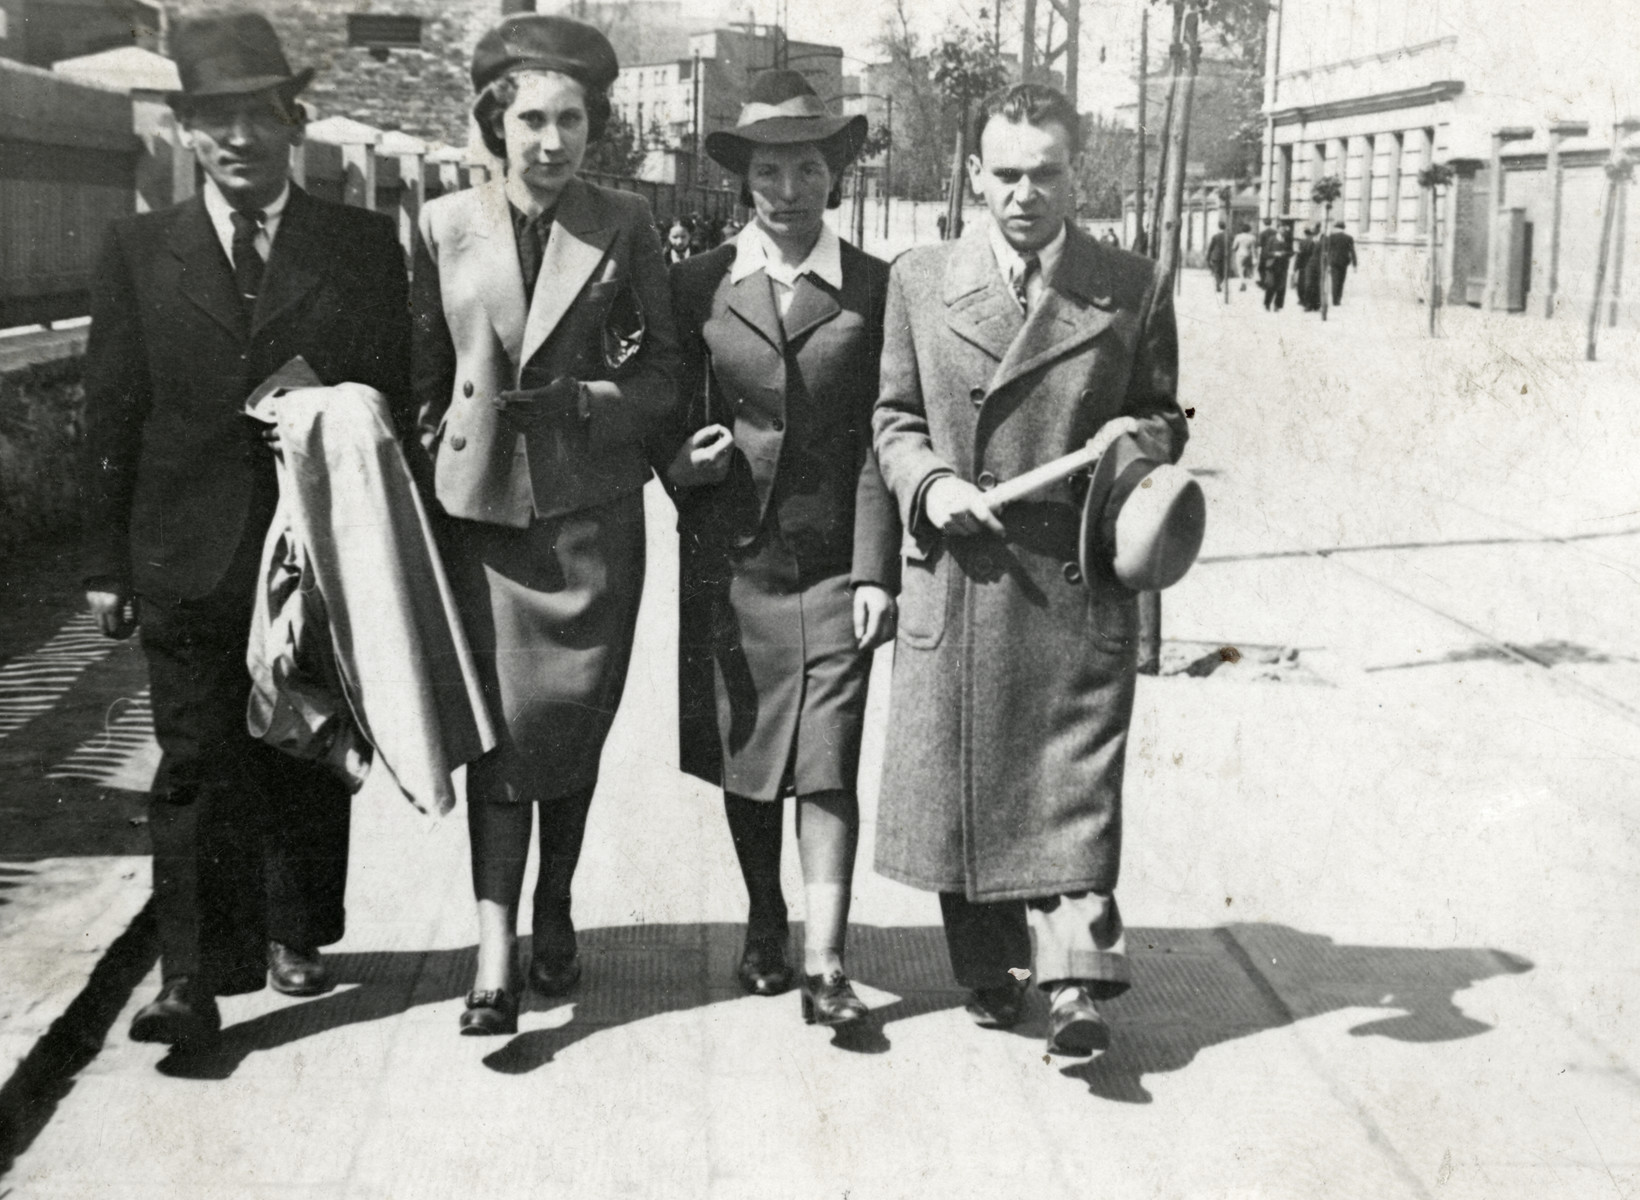 Jonas and Rywka Markowicz walk down a street in Sosnowiec shortly before the start of World War II.  Jonas and Rywka Markowicz are on the left.